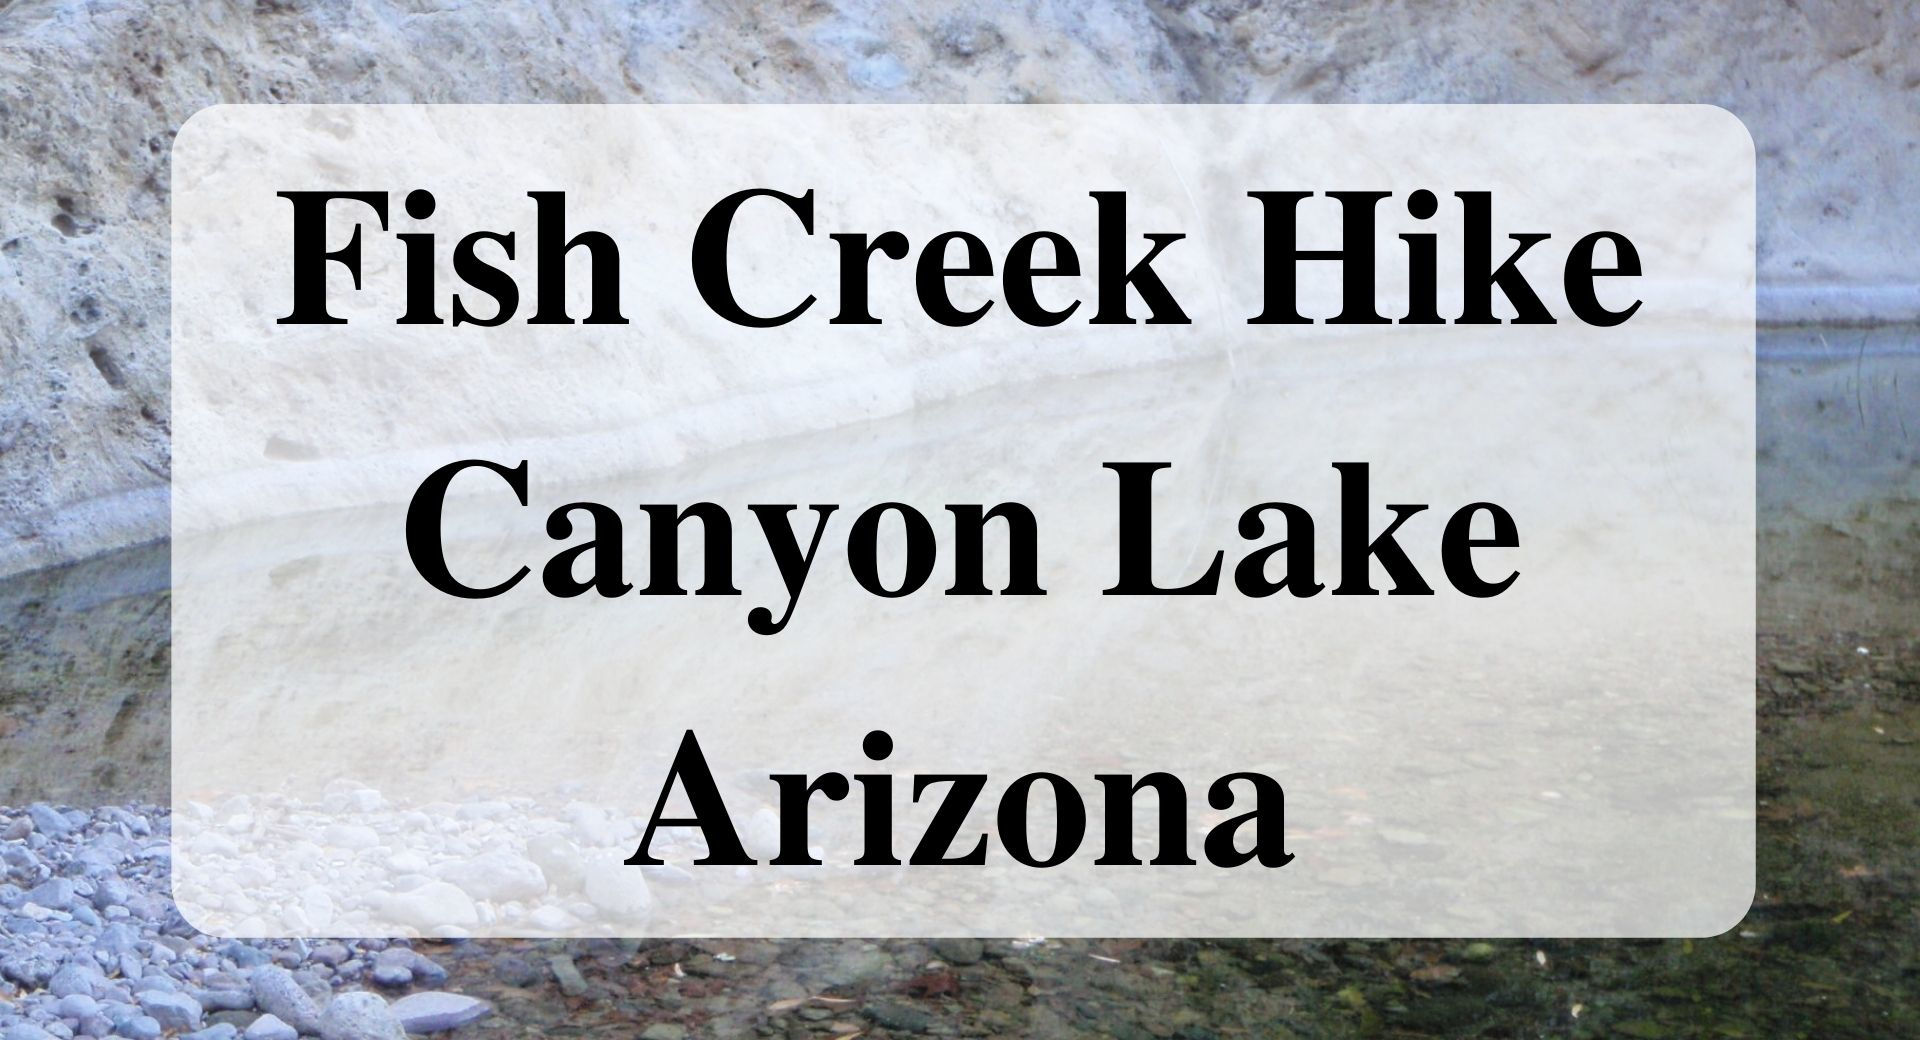 Fish Creek Hike Canyon Lake Arizona main Forever sabbatical